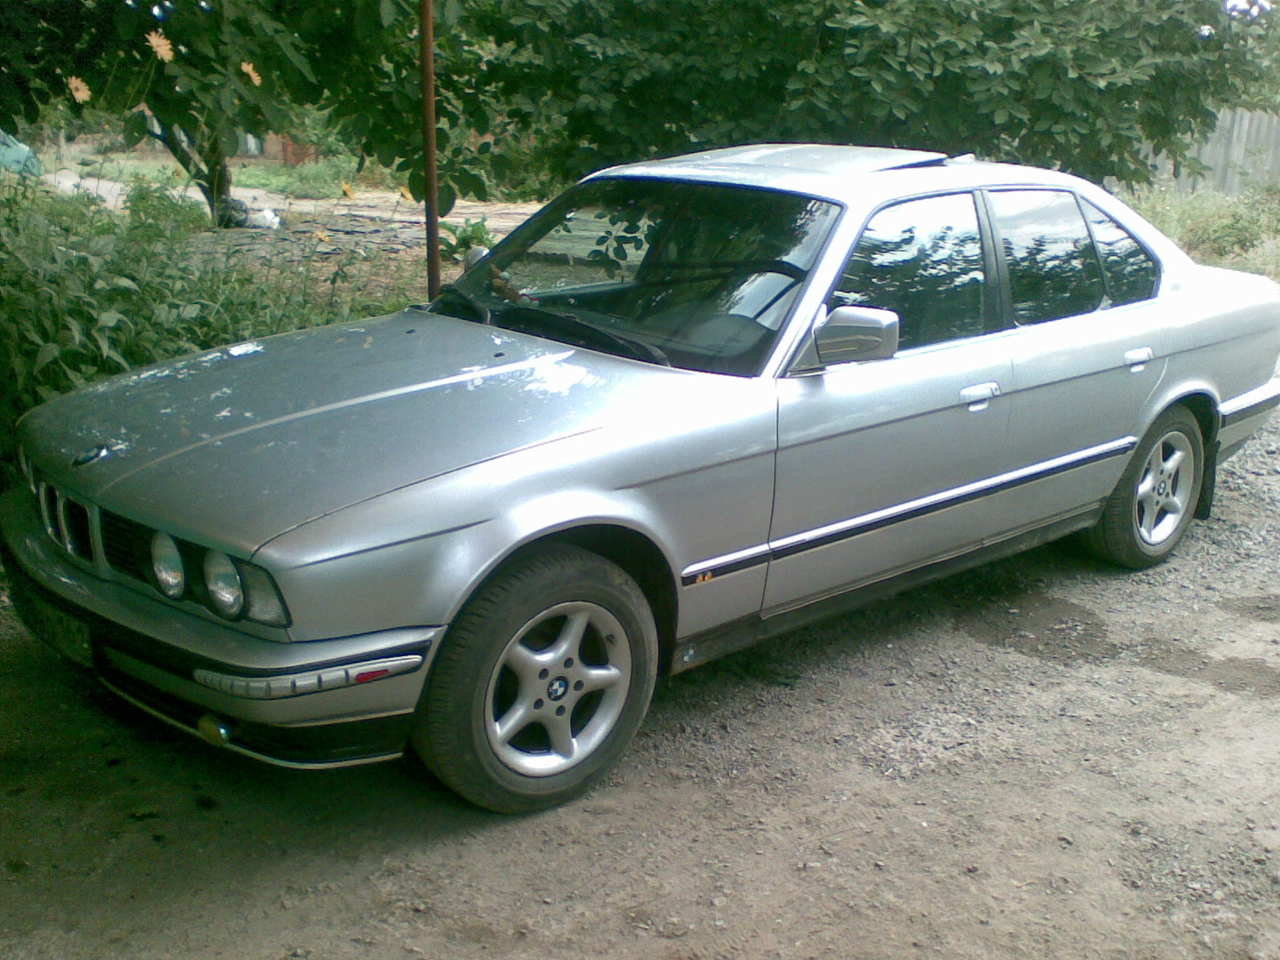 1990 bmw 5 series pictures diesel fr or rr. Black Bedroom Furniture Sets. Home Design Ideas